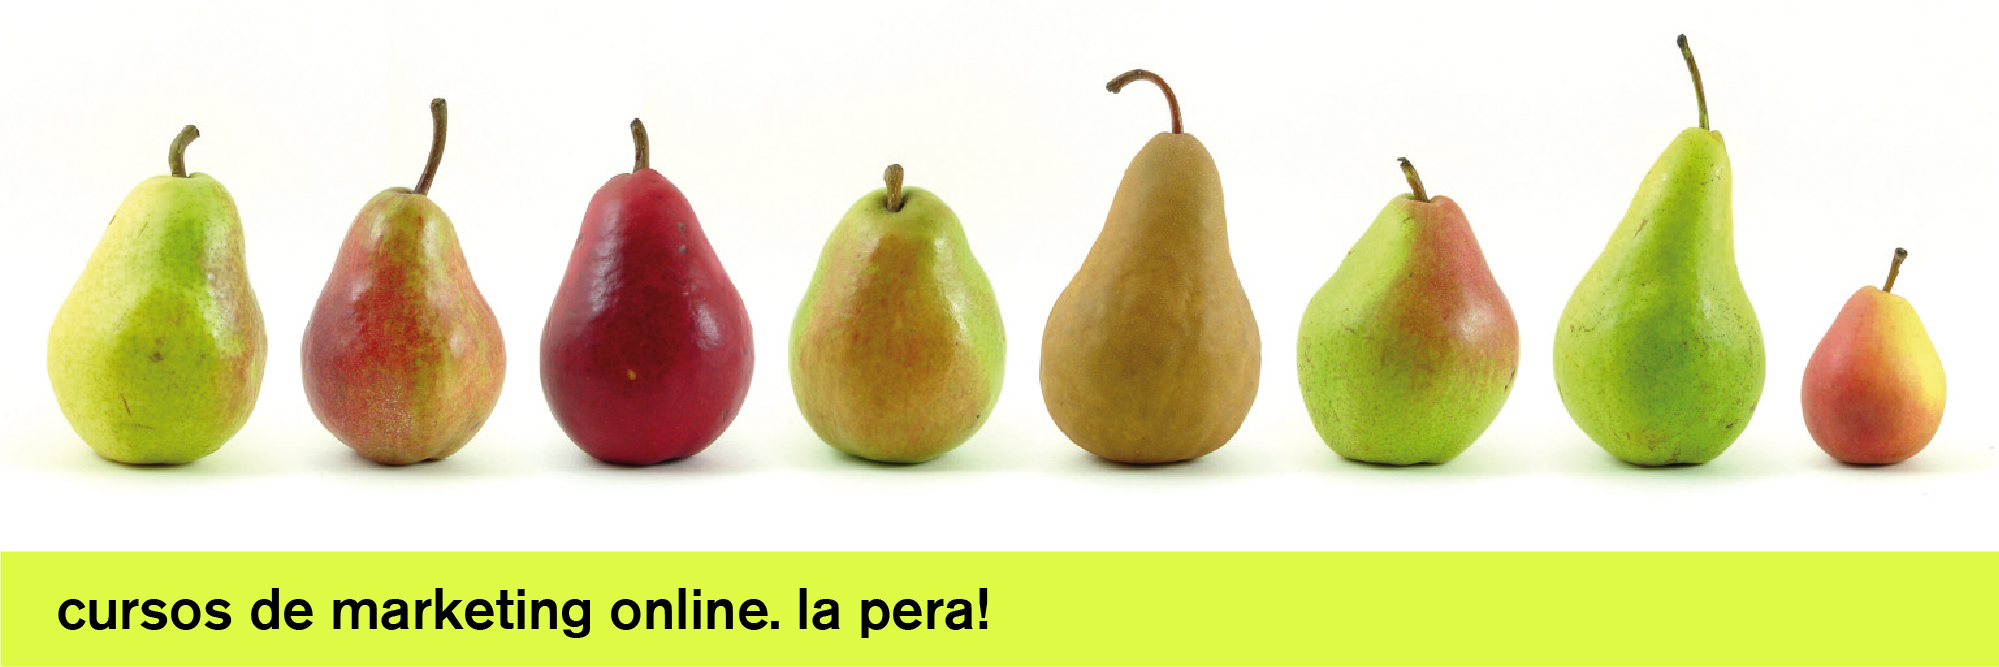 cursos de marketing online. la pera!